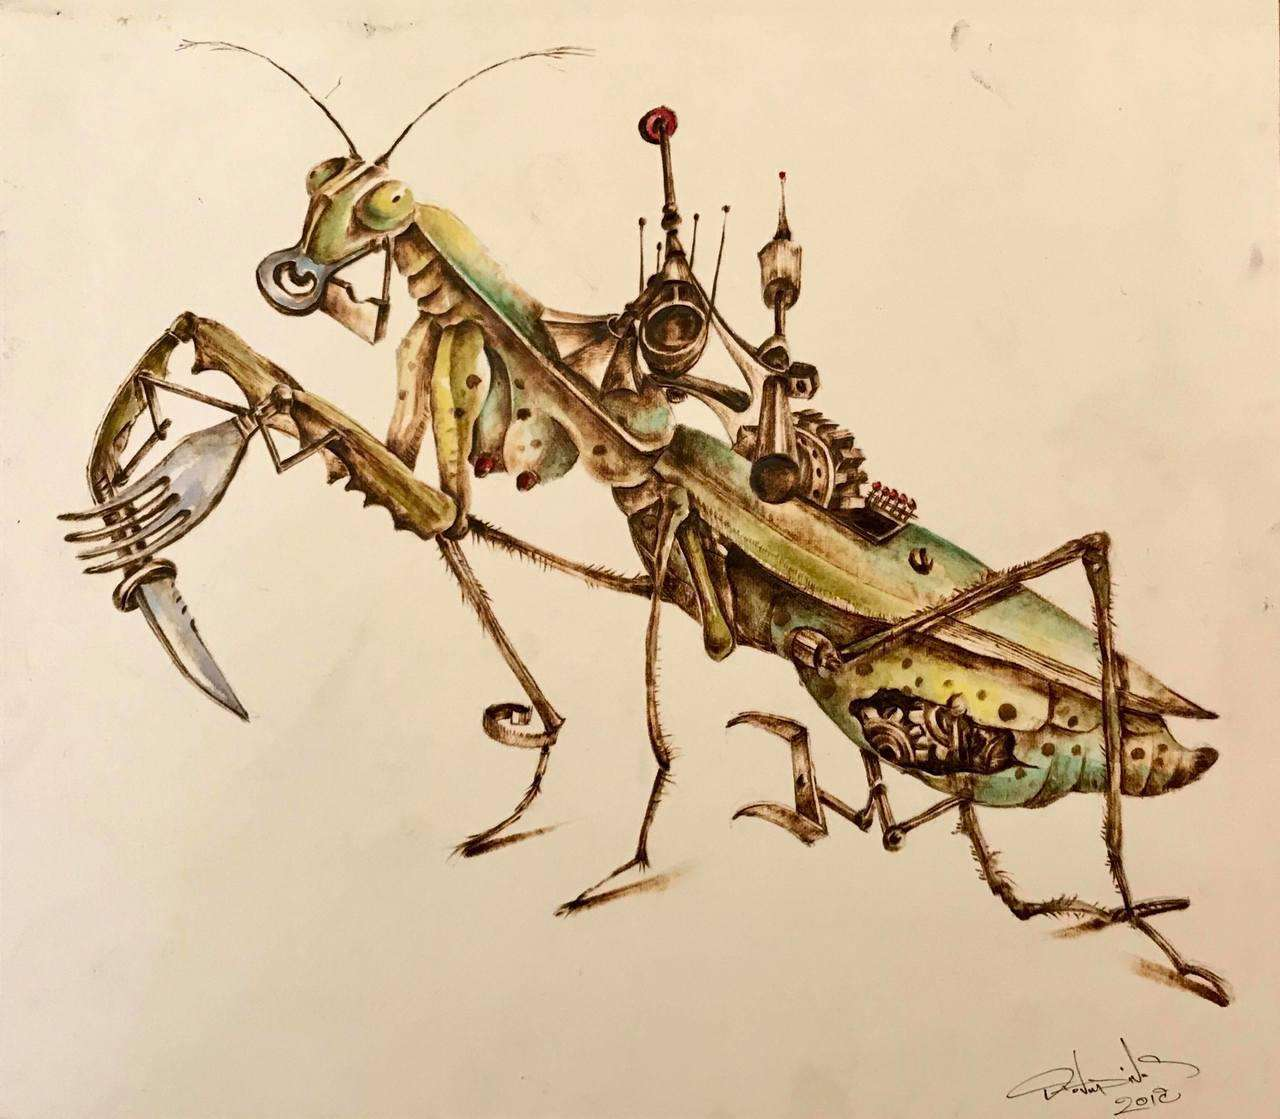 Vaggelis Theodoridis, Mantis Diligitis The Common, 25 x 35 cm